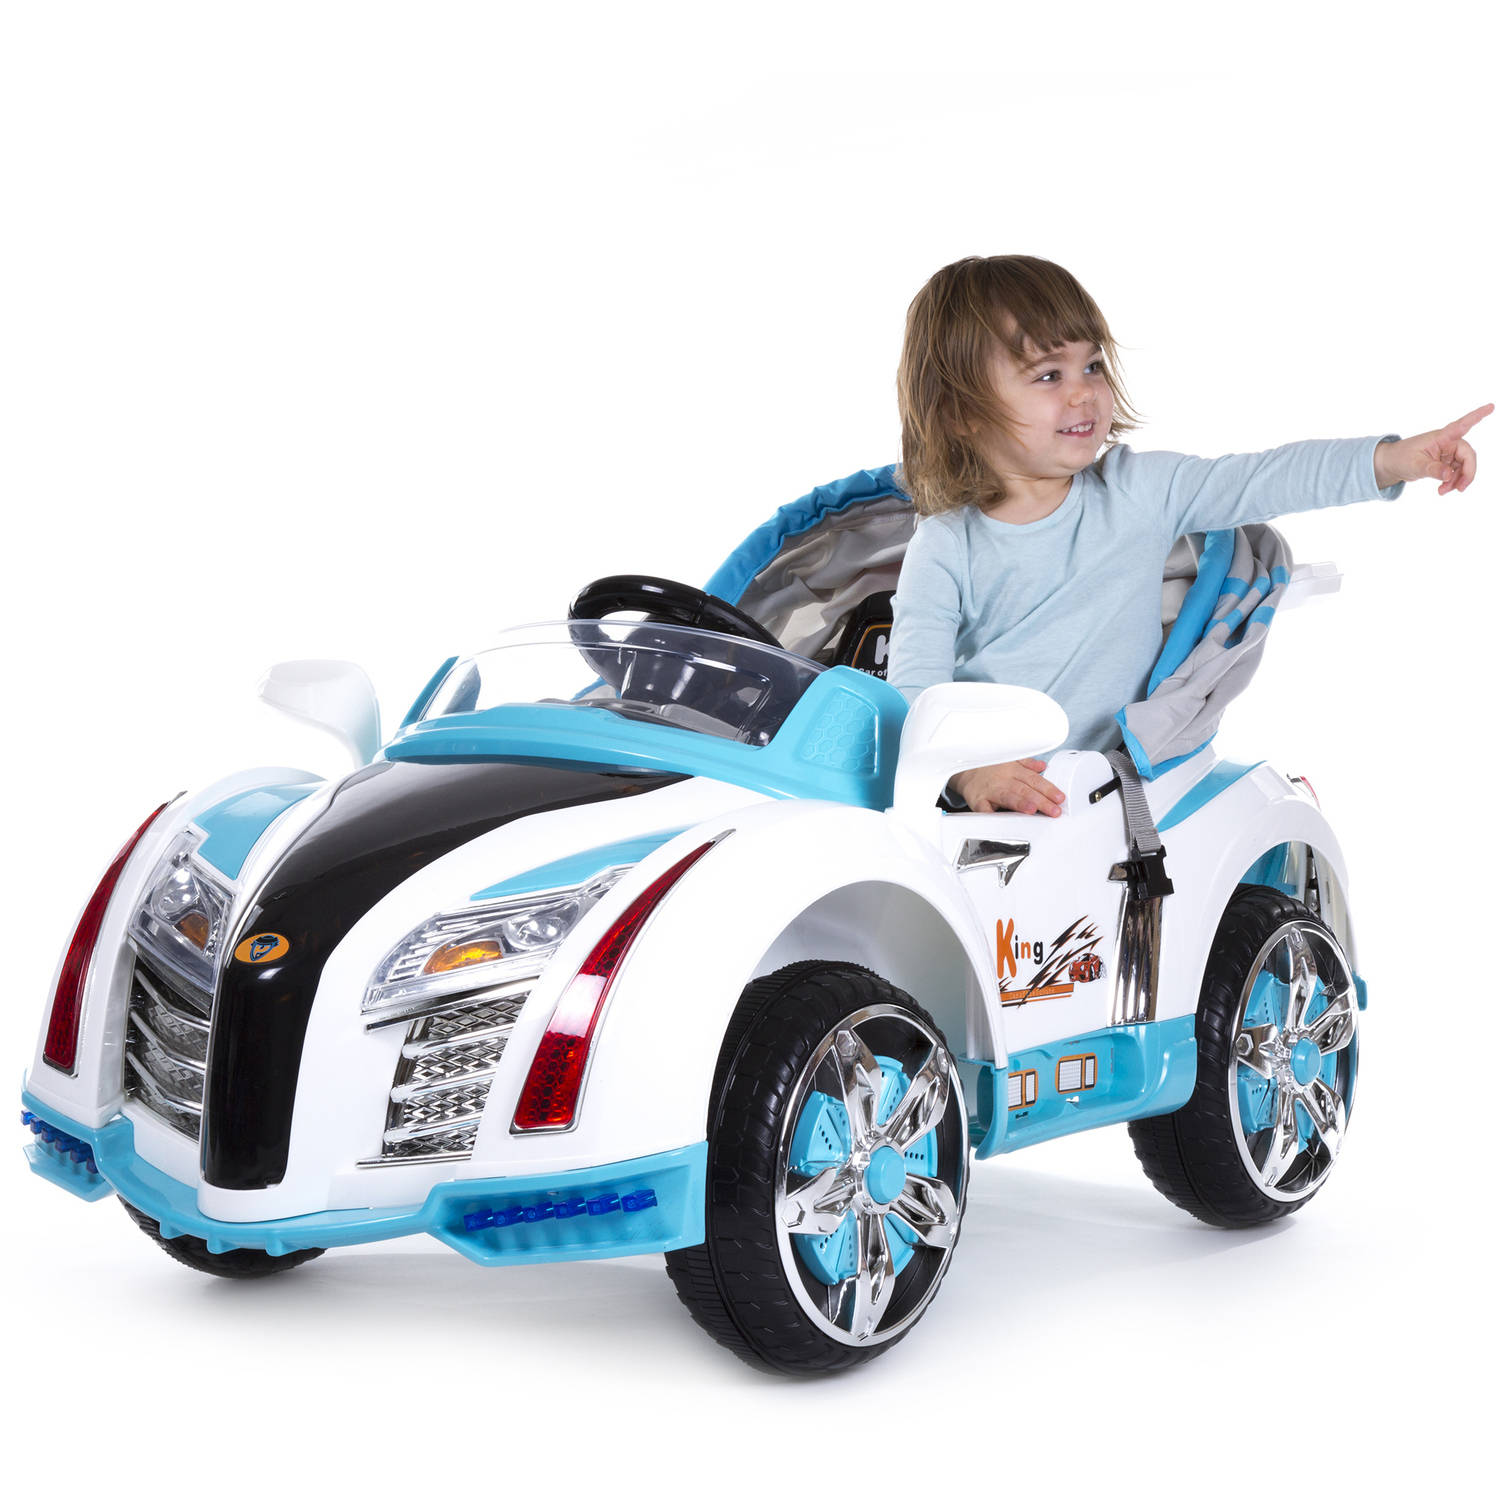 Rockin' Rollers Pre-Assembled Battery Operated Car with Canopy